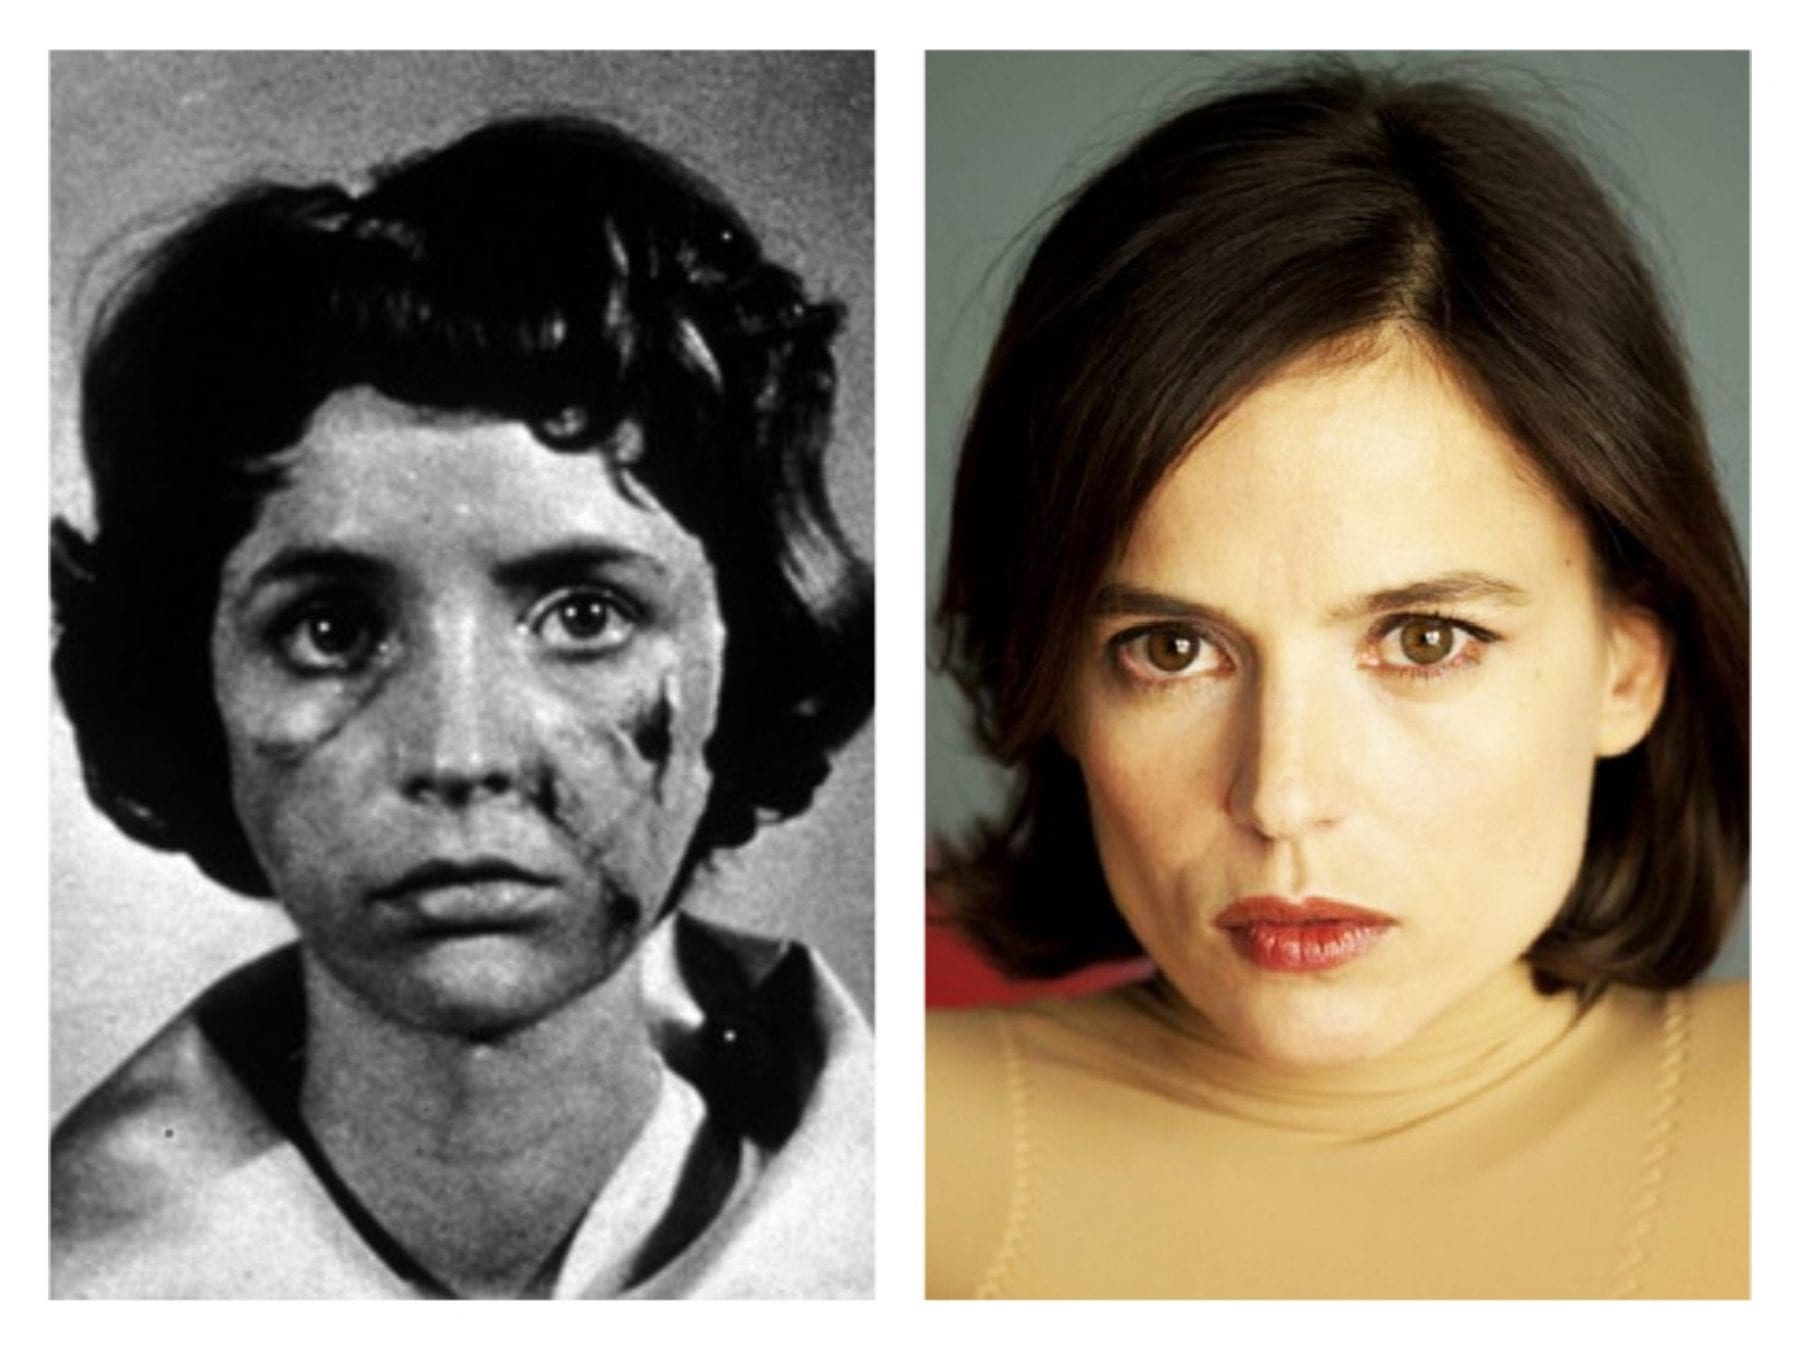 Juxtaposition of Christiane in Eyes Without a Face and Vera in The Skin I Live in.